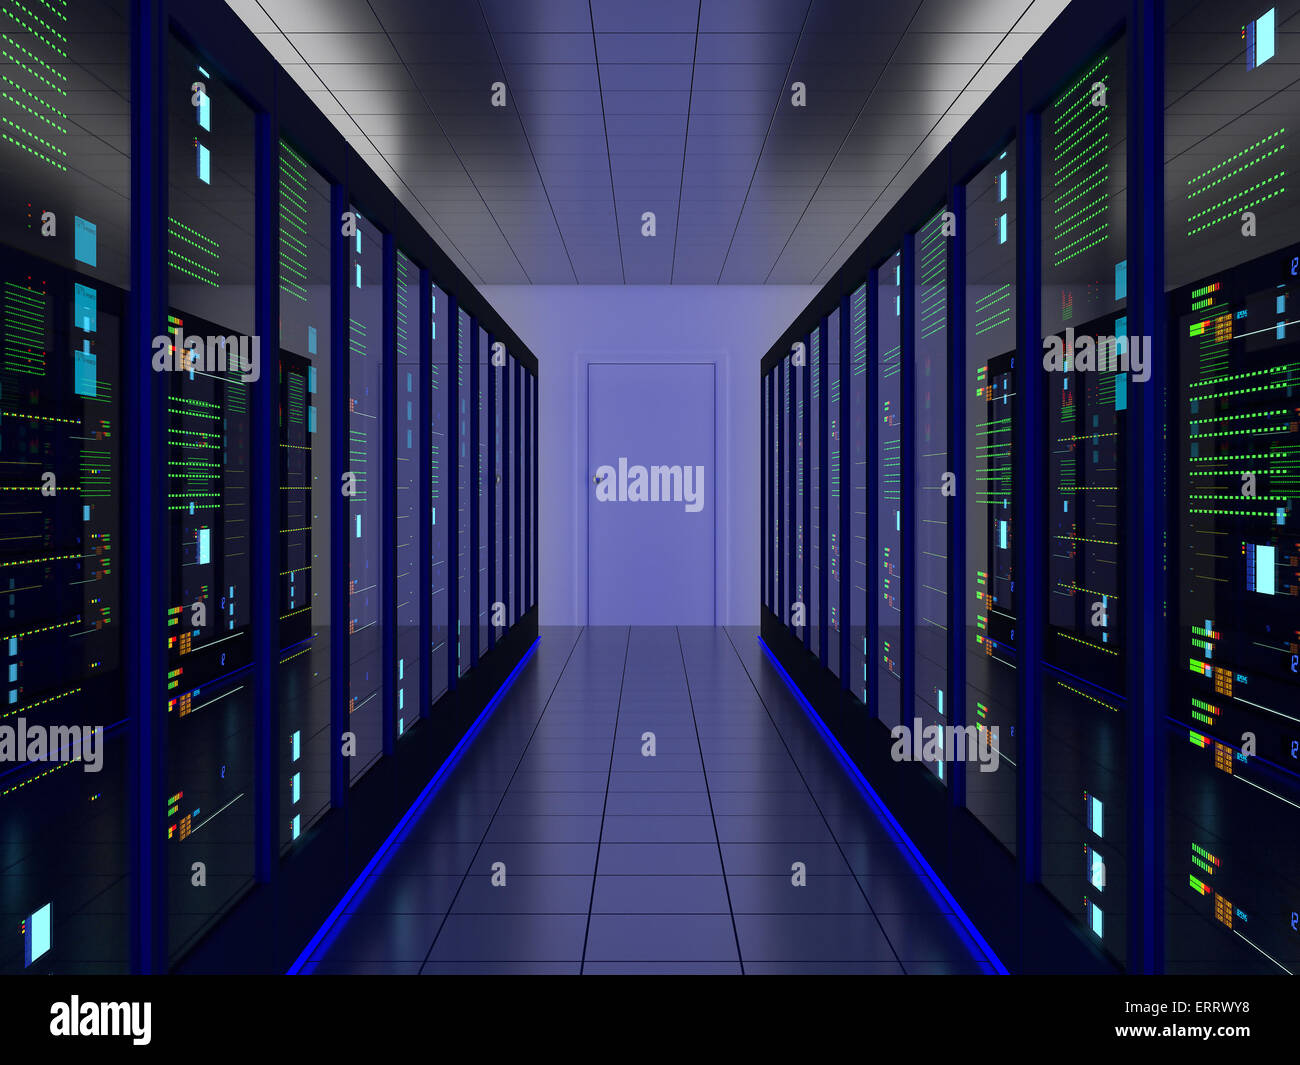 symmetrical server room (colocation) or colo with server cabinets on two sides - Stock Image